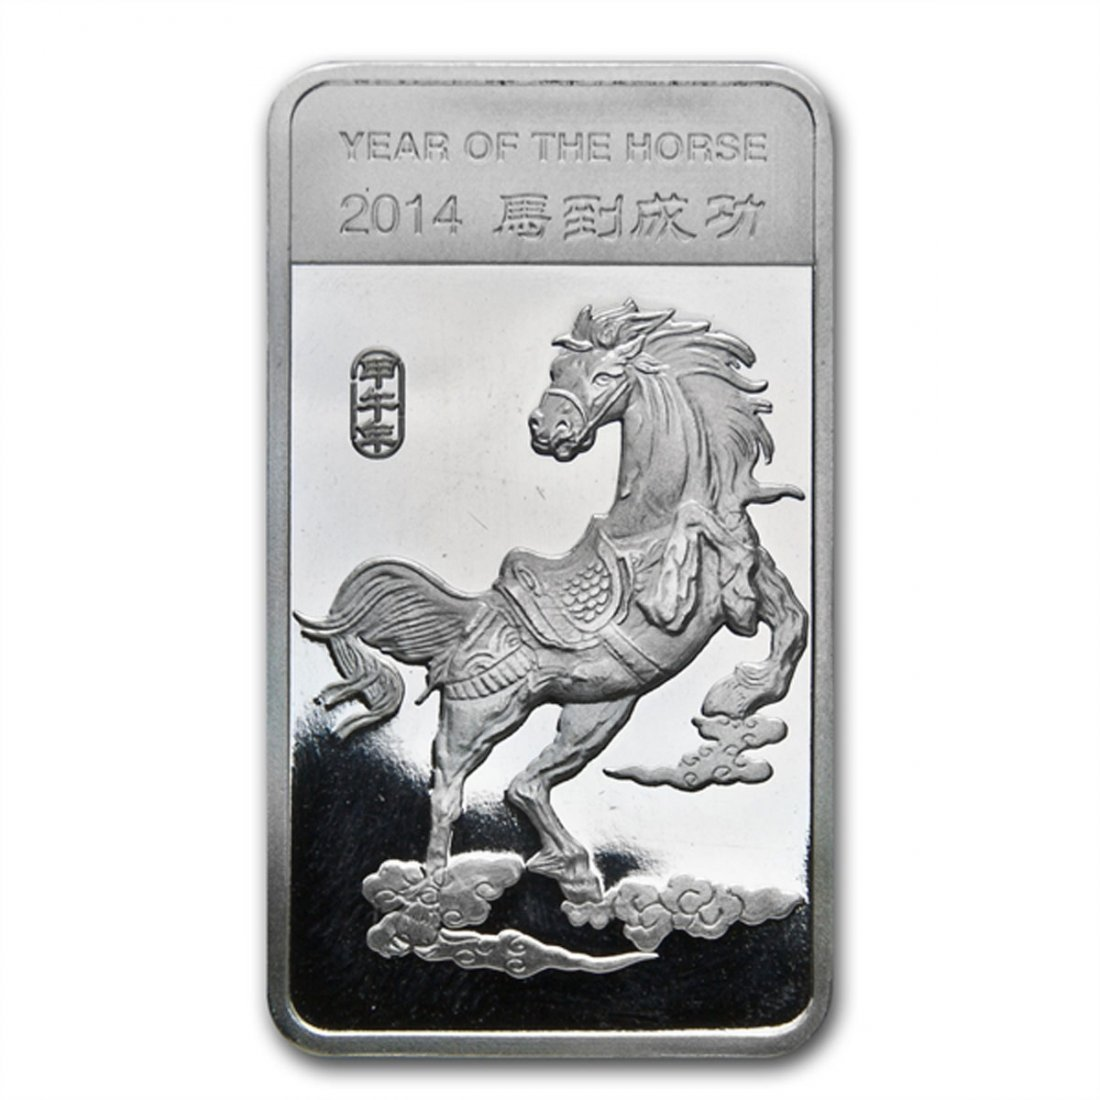 1/2 oz Year of the Horse Silver Bar .999 Fine